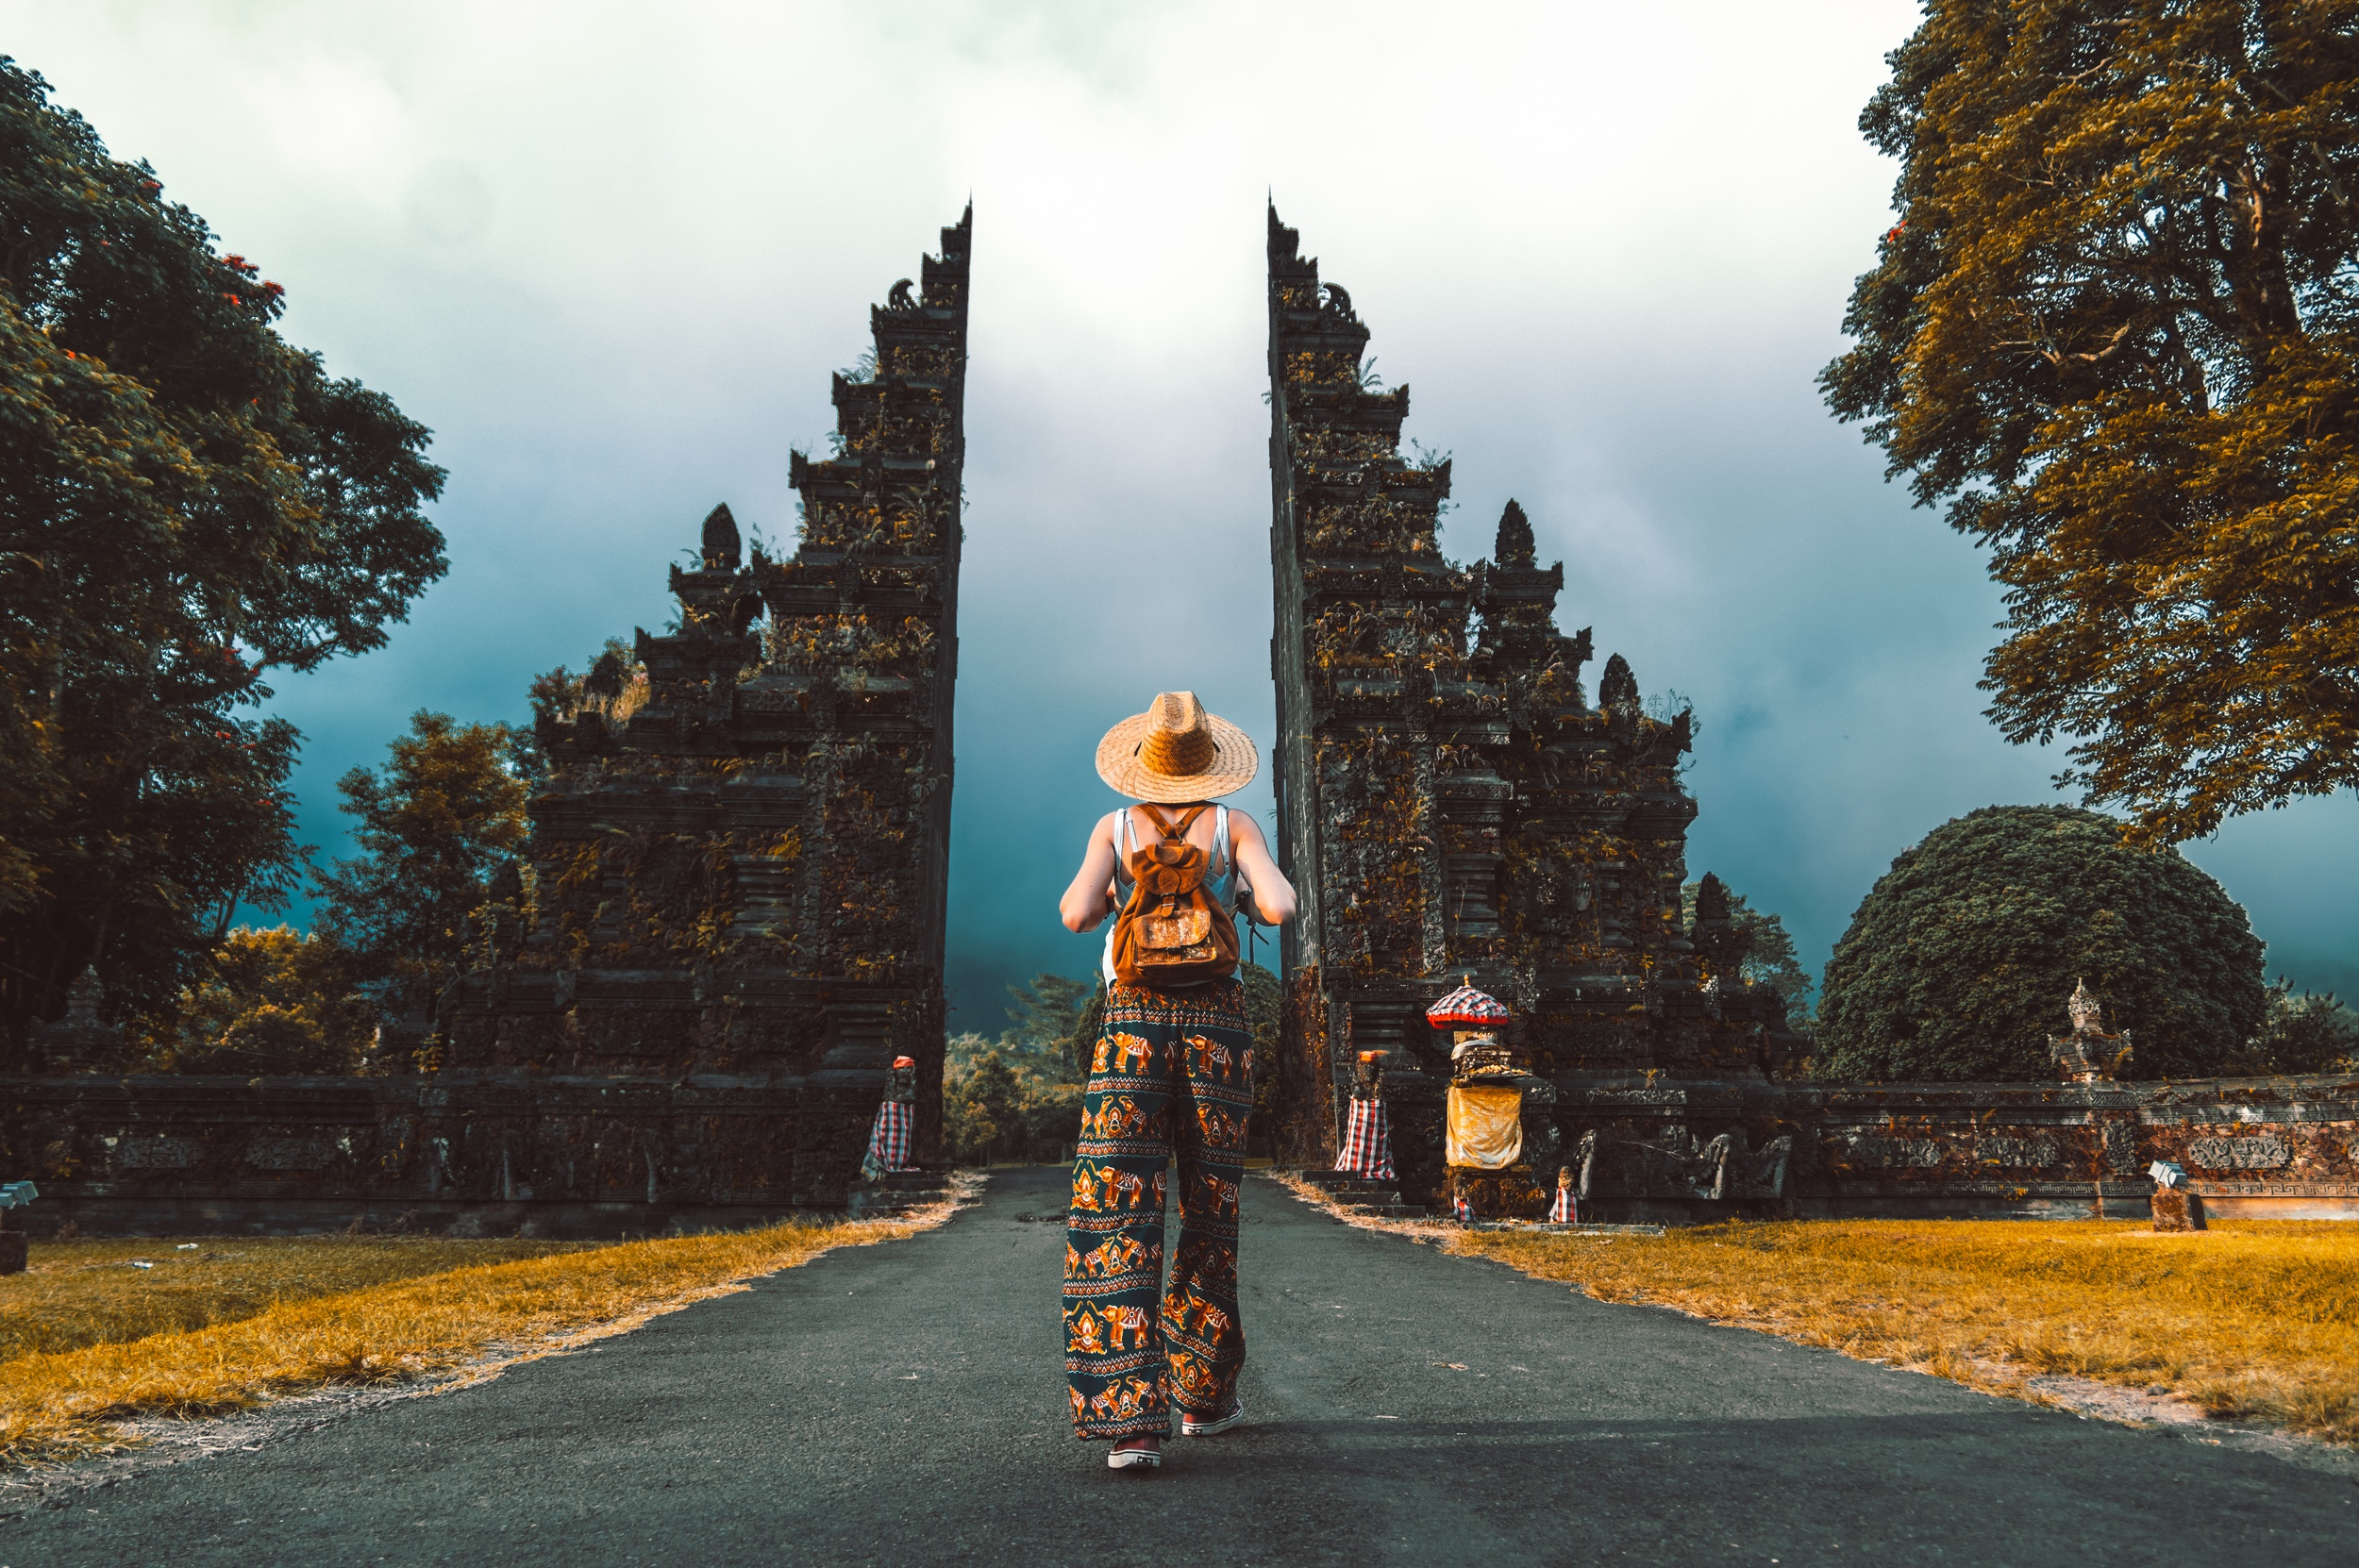 Is Indonesia safe to travel alone